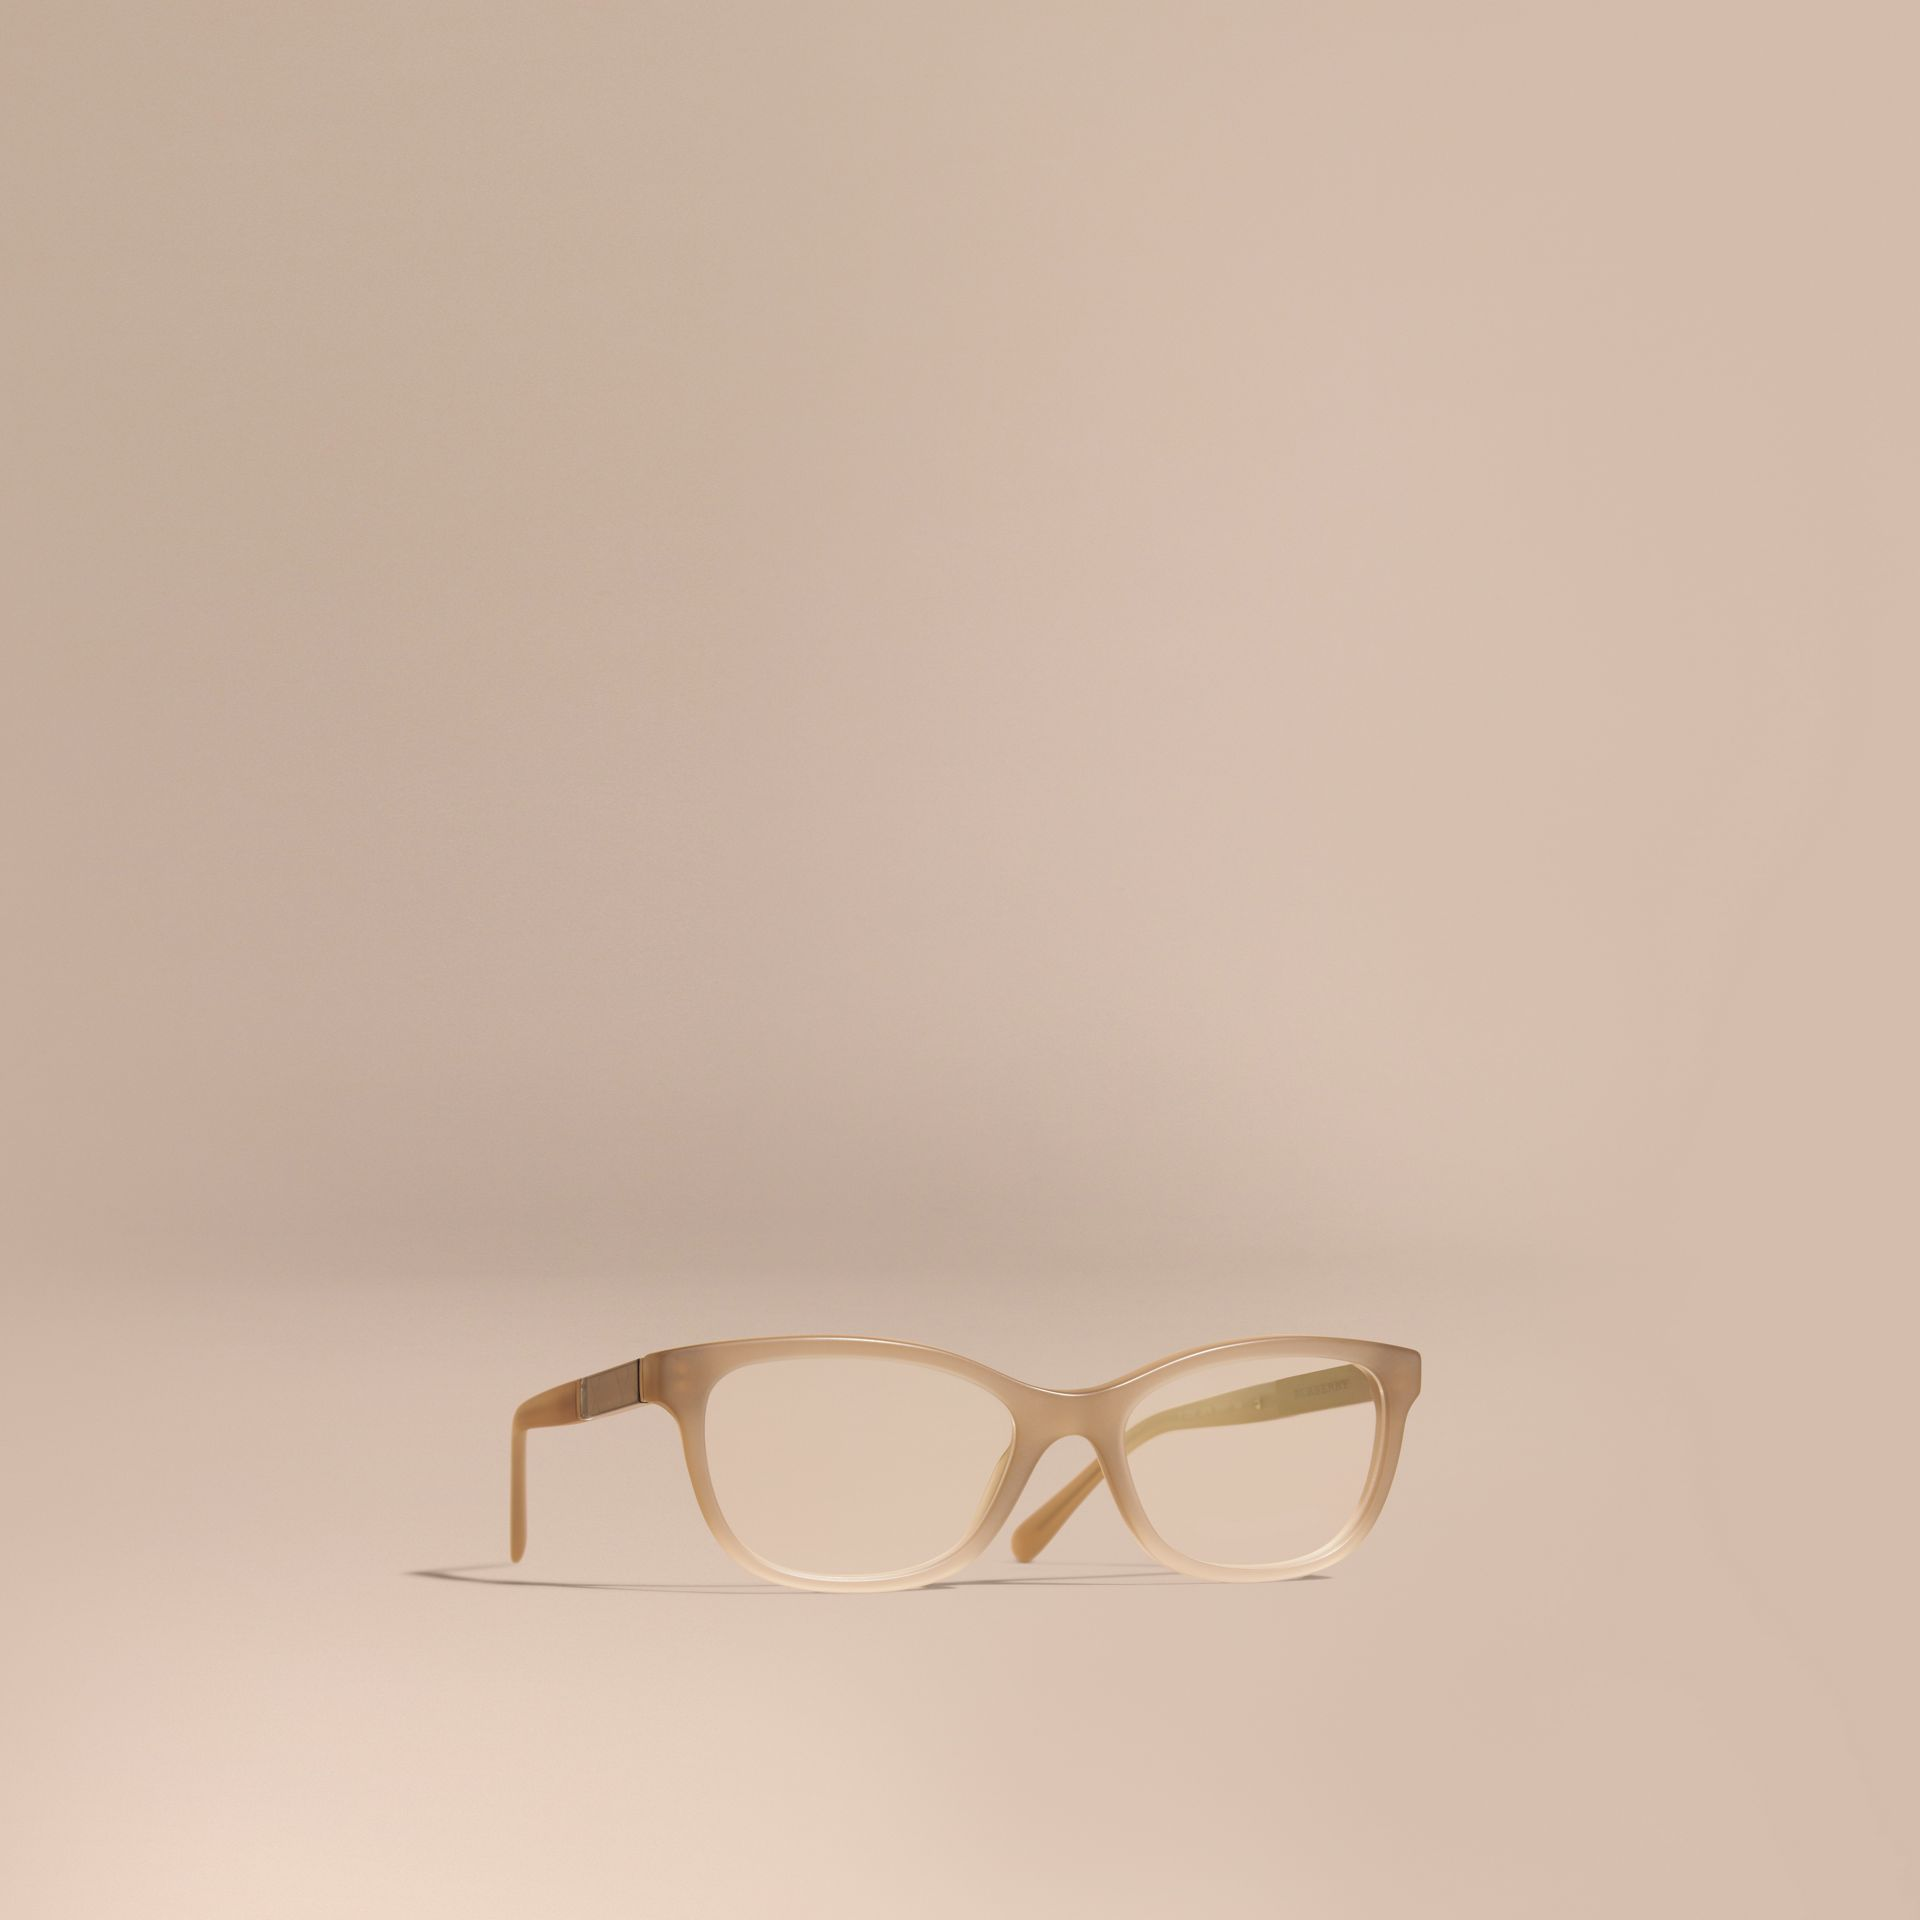 Chino grey Check Detail Oval Optical Frames Chino Grey - gallery image 1